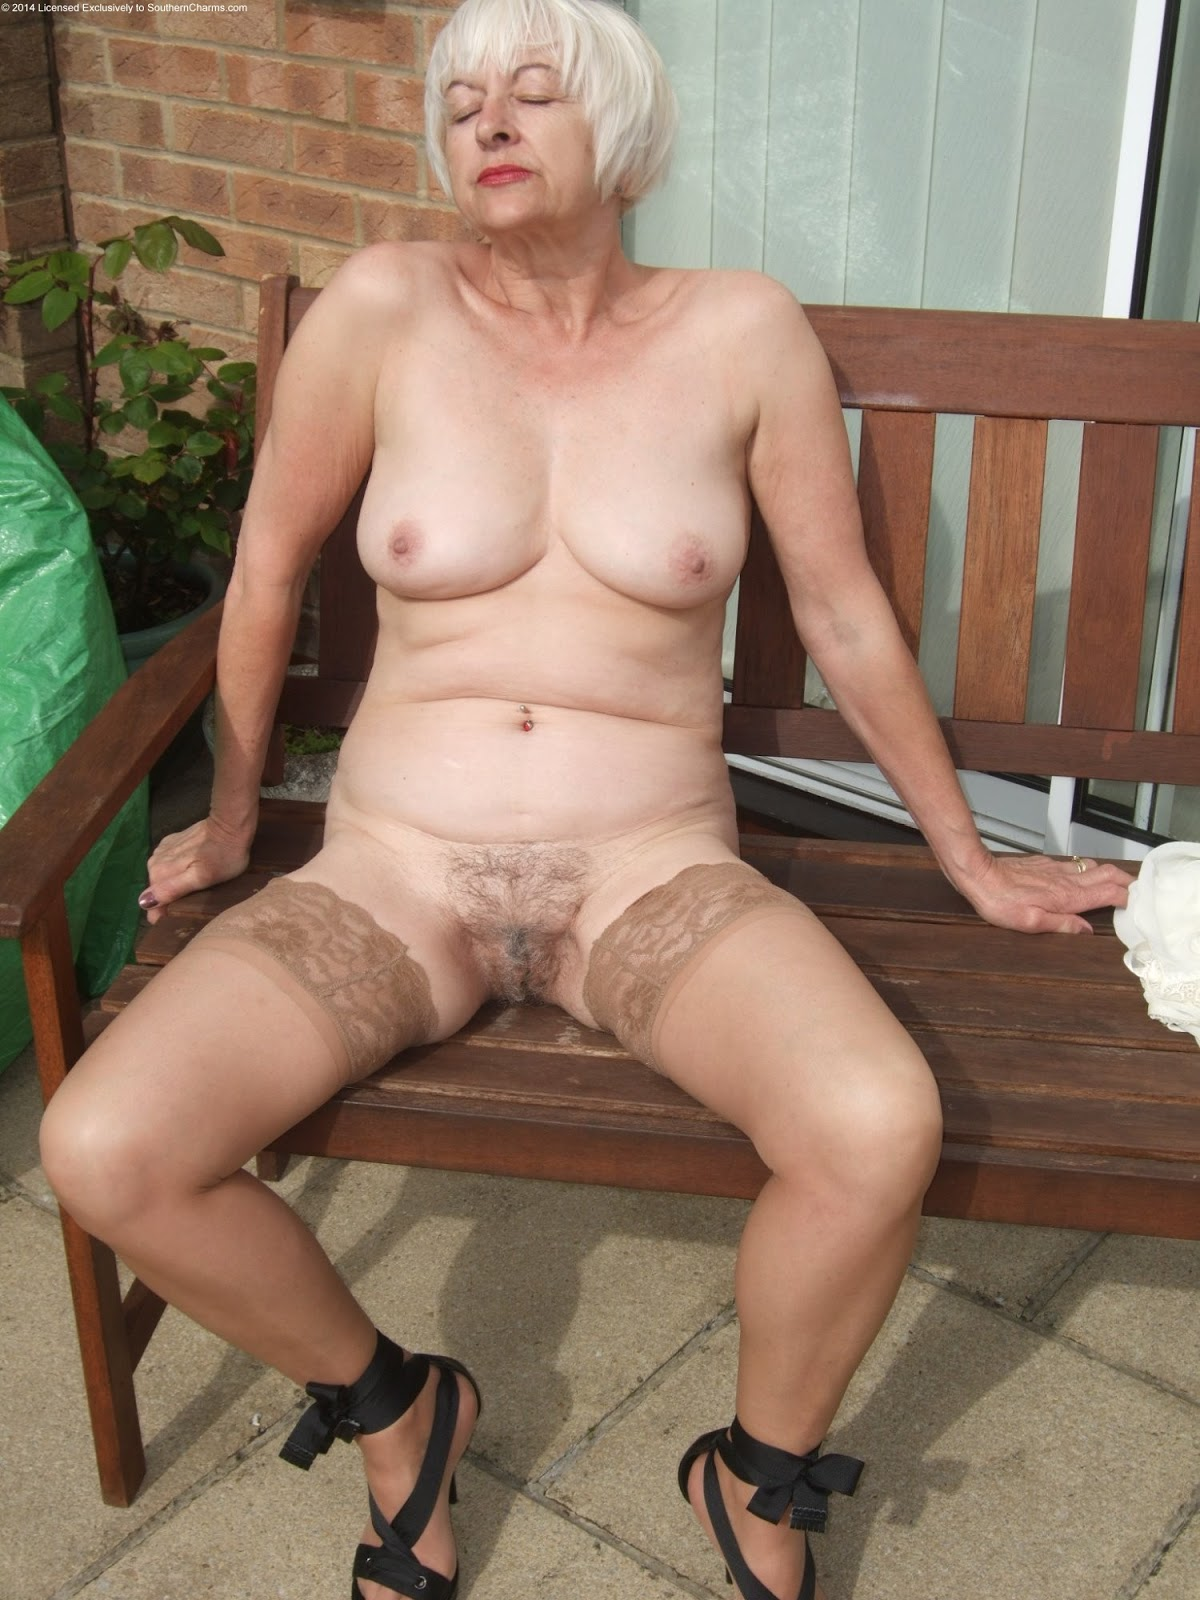 Archive Of Old Women Nude Old Lady Pictures-5136